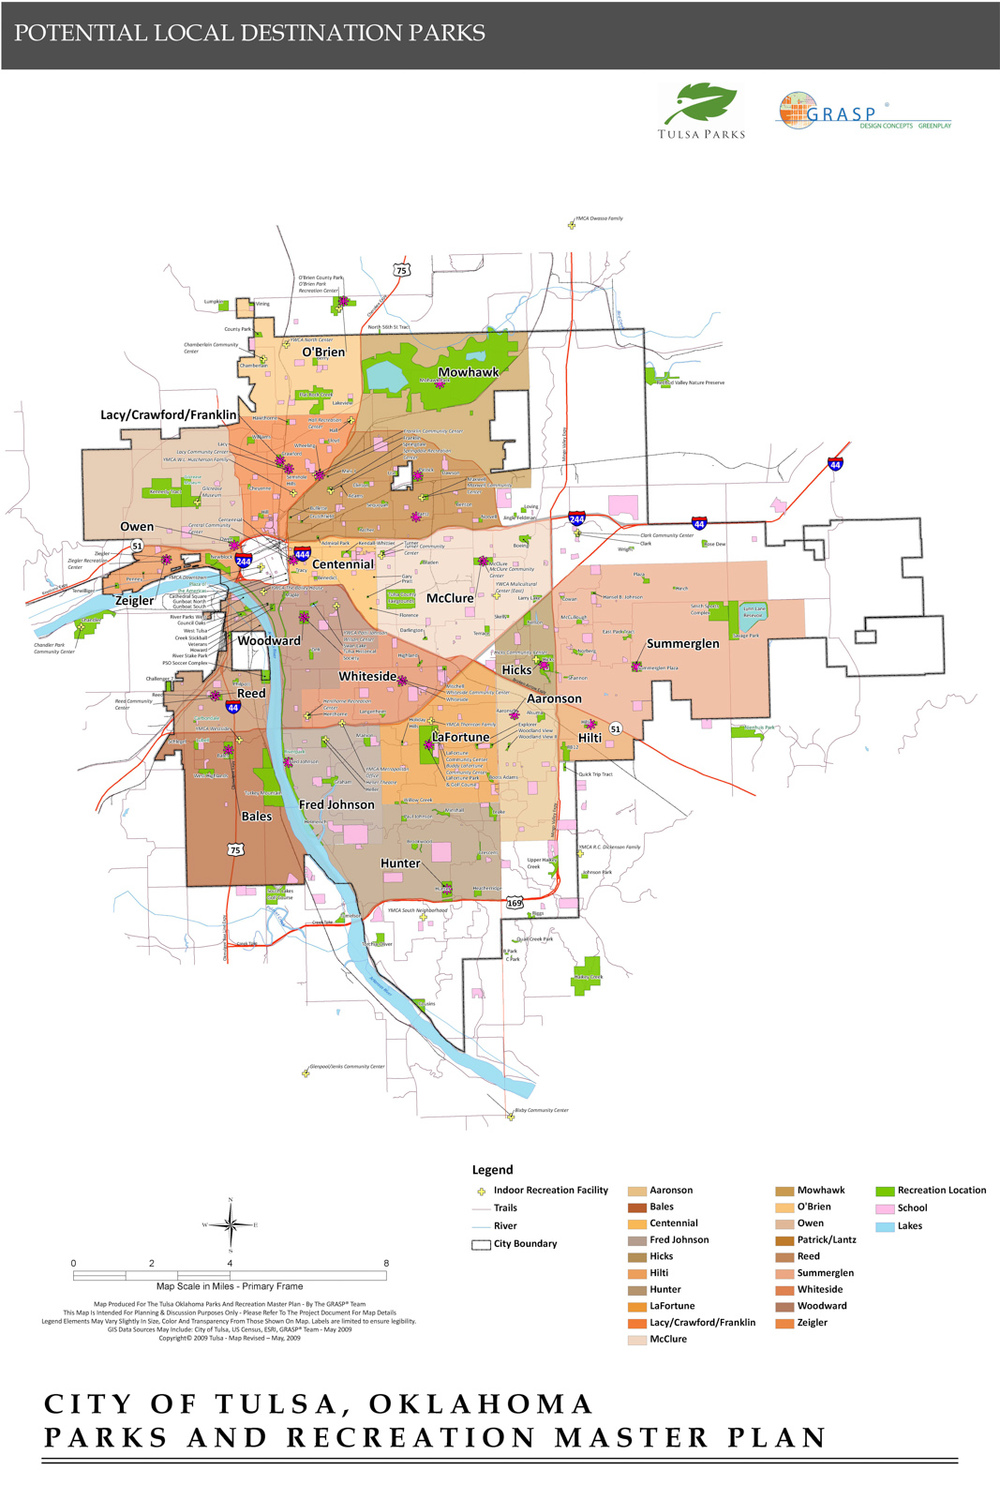 Tulsa_Potential Local Destination Parks Map.jpg